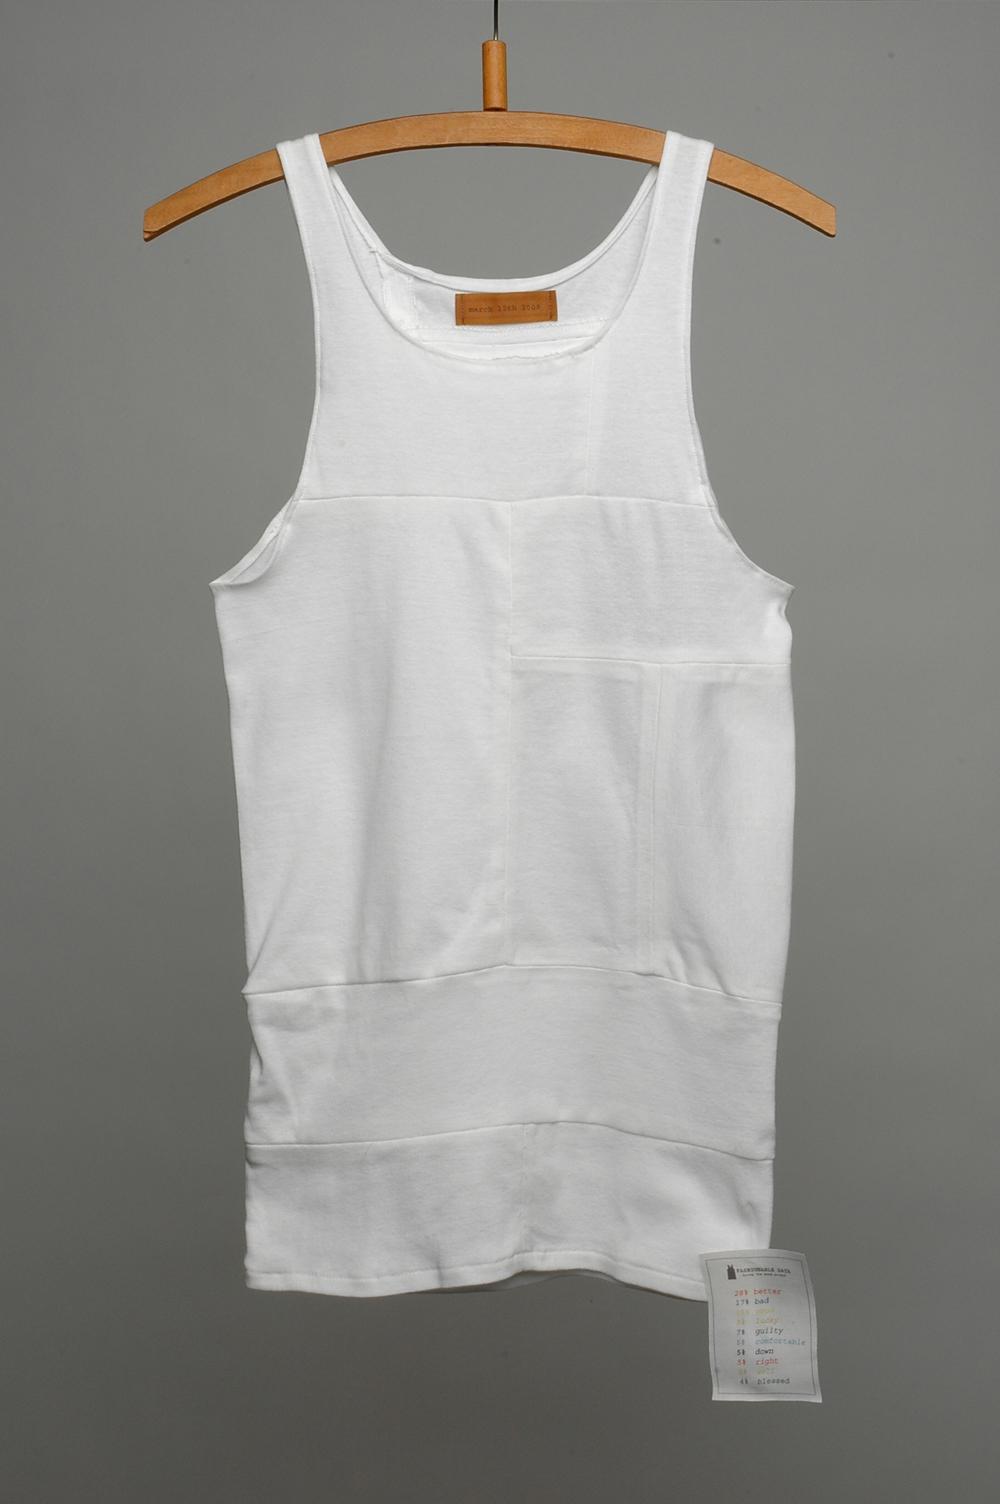 Officina-Corpuscoli-Fashionable Data- front vest